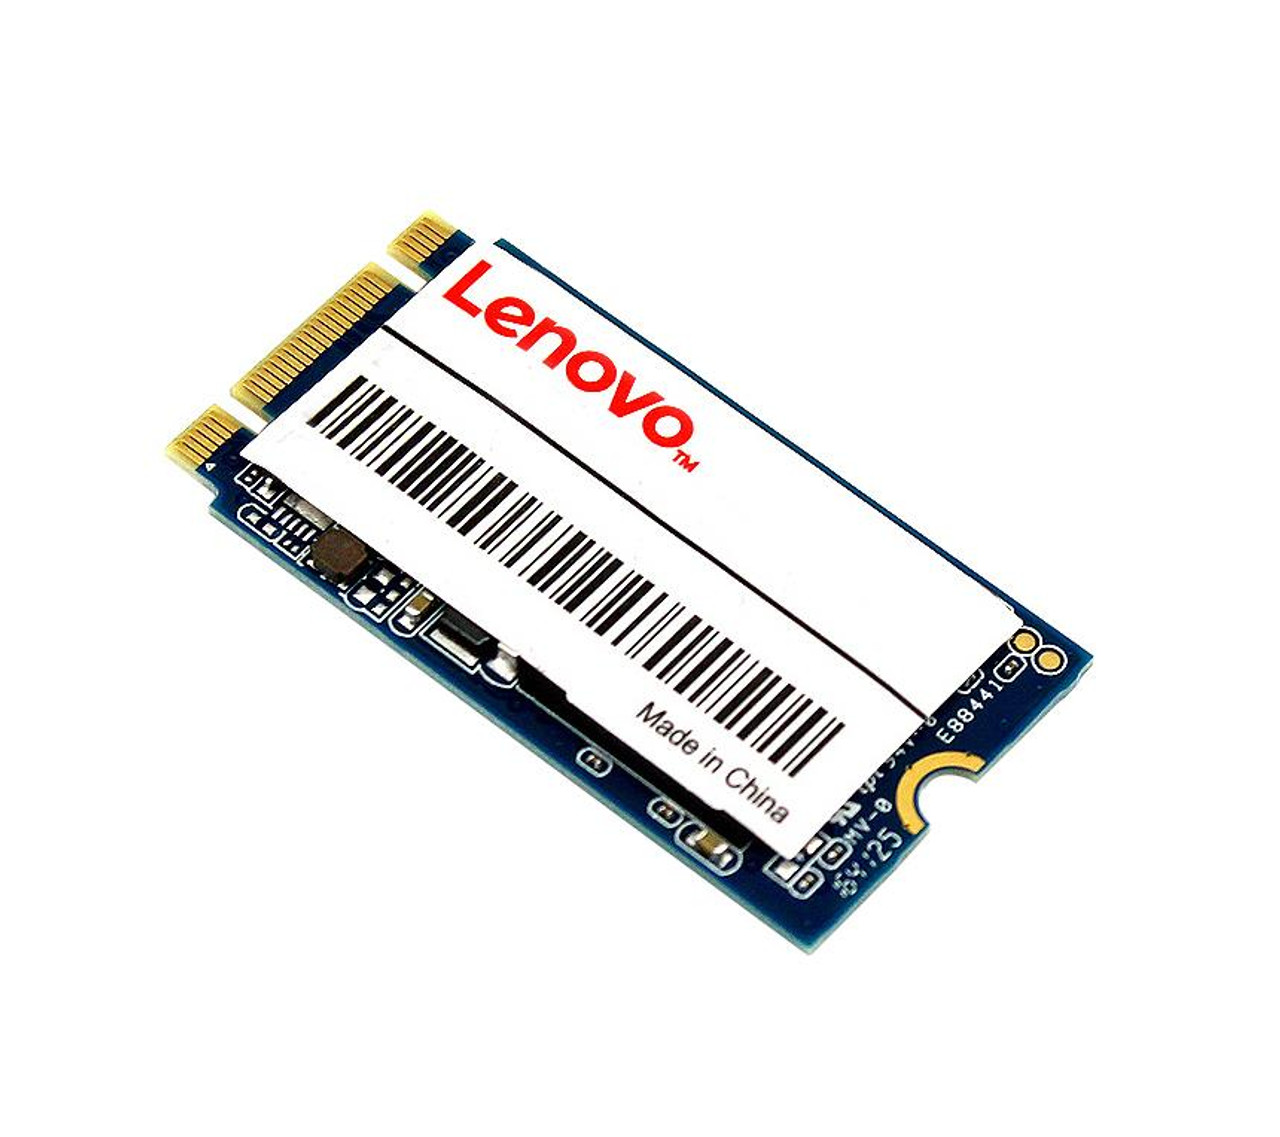 00LF428 Lenovo 128GB MLC SATA 6Gbps M 2 2242 Internal Solid State Drive  (SSD)